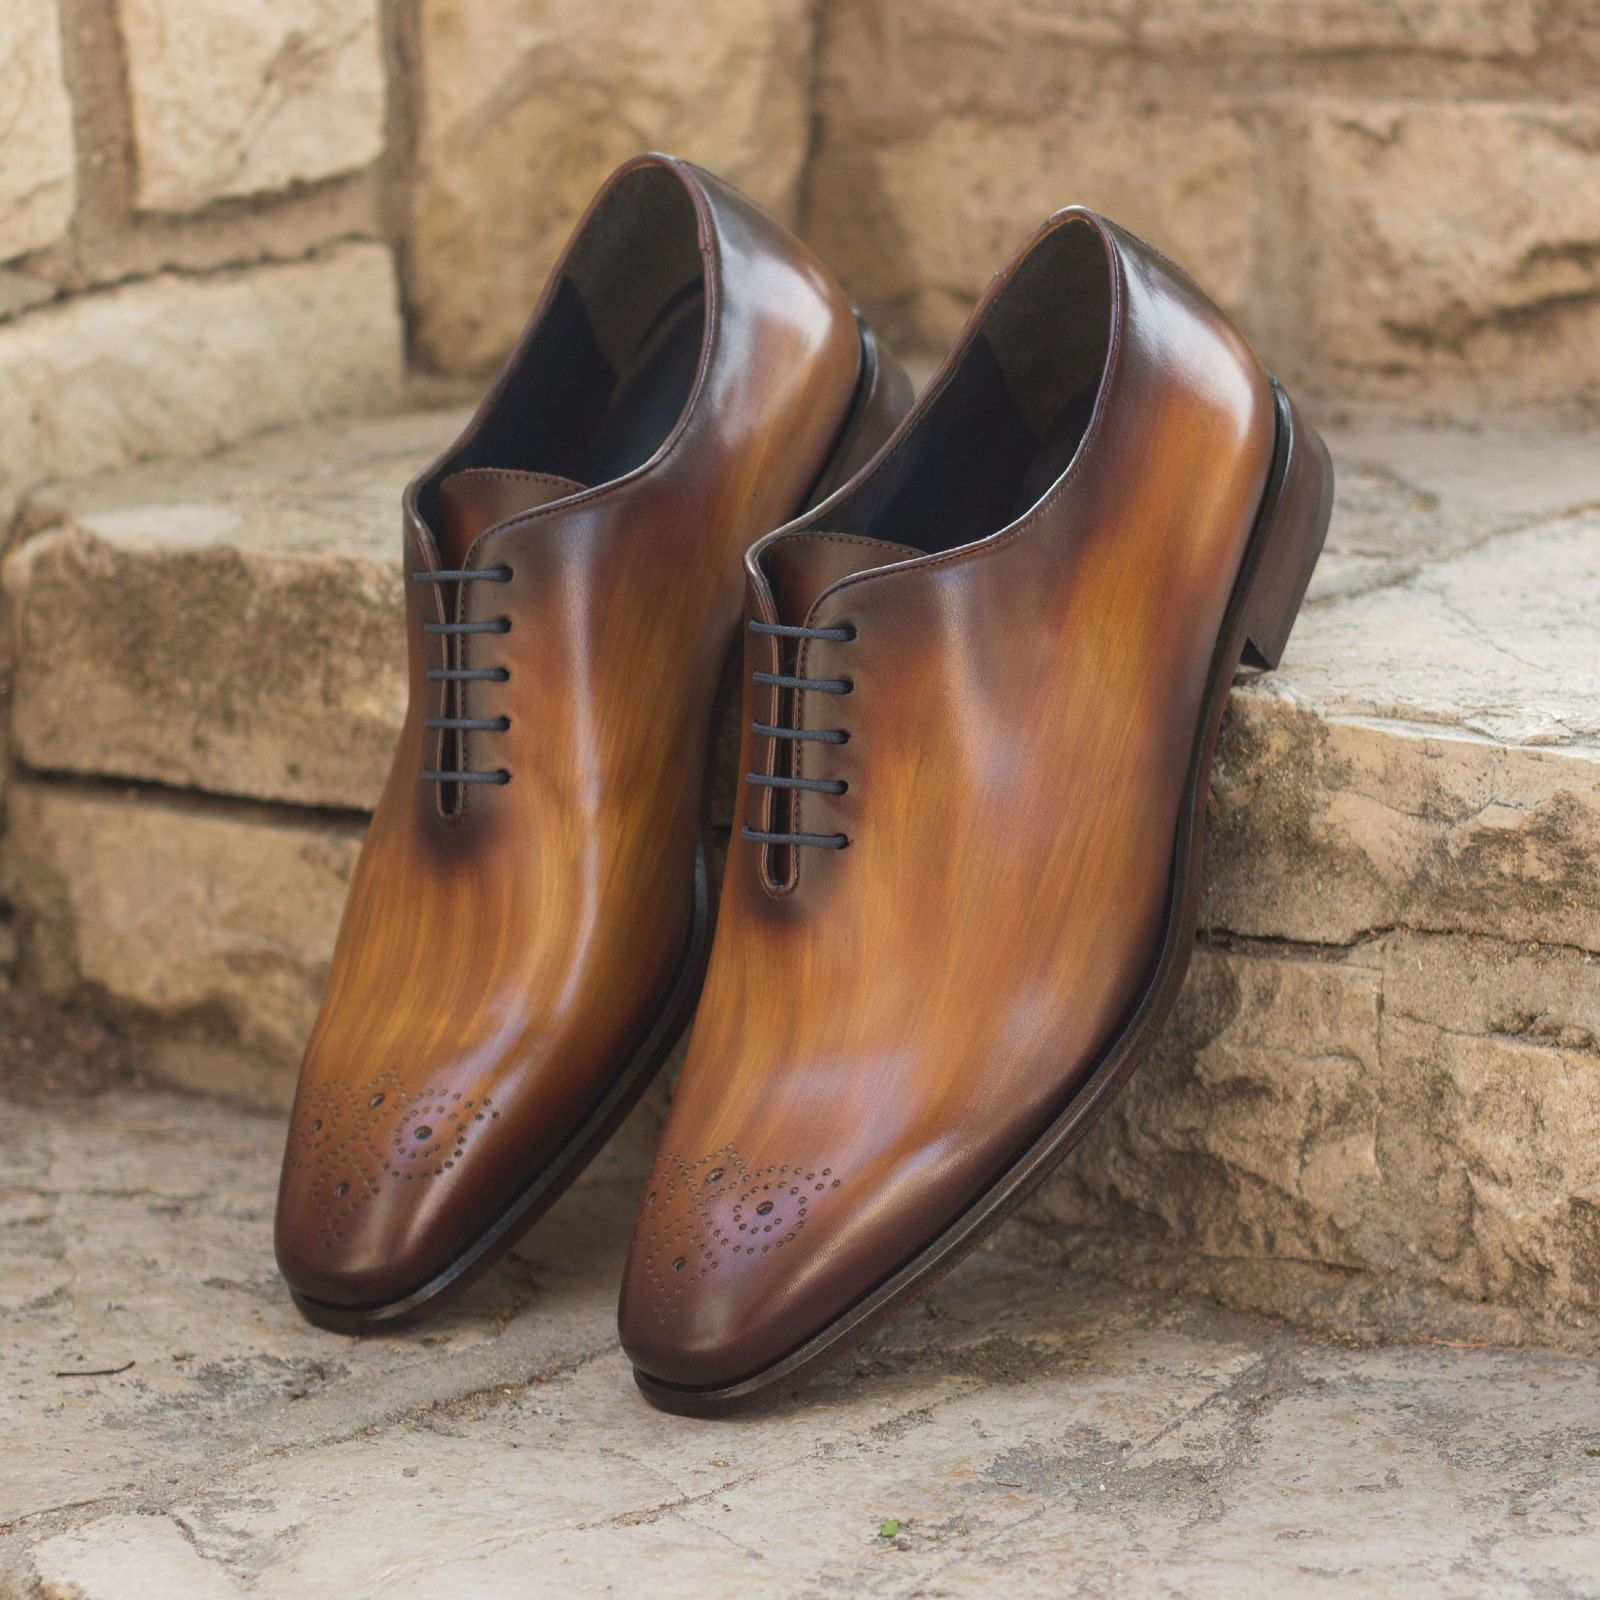 0b942fd5eb048 Whole Cut Shoes from Robert August Shoes #shoes #shoesoftheday #mensstyle  #menswear #mensfashion #luxurylifestyle #success #hot #style